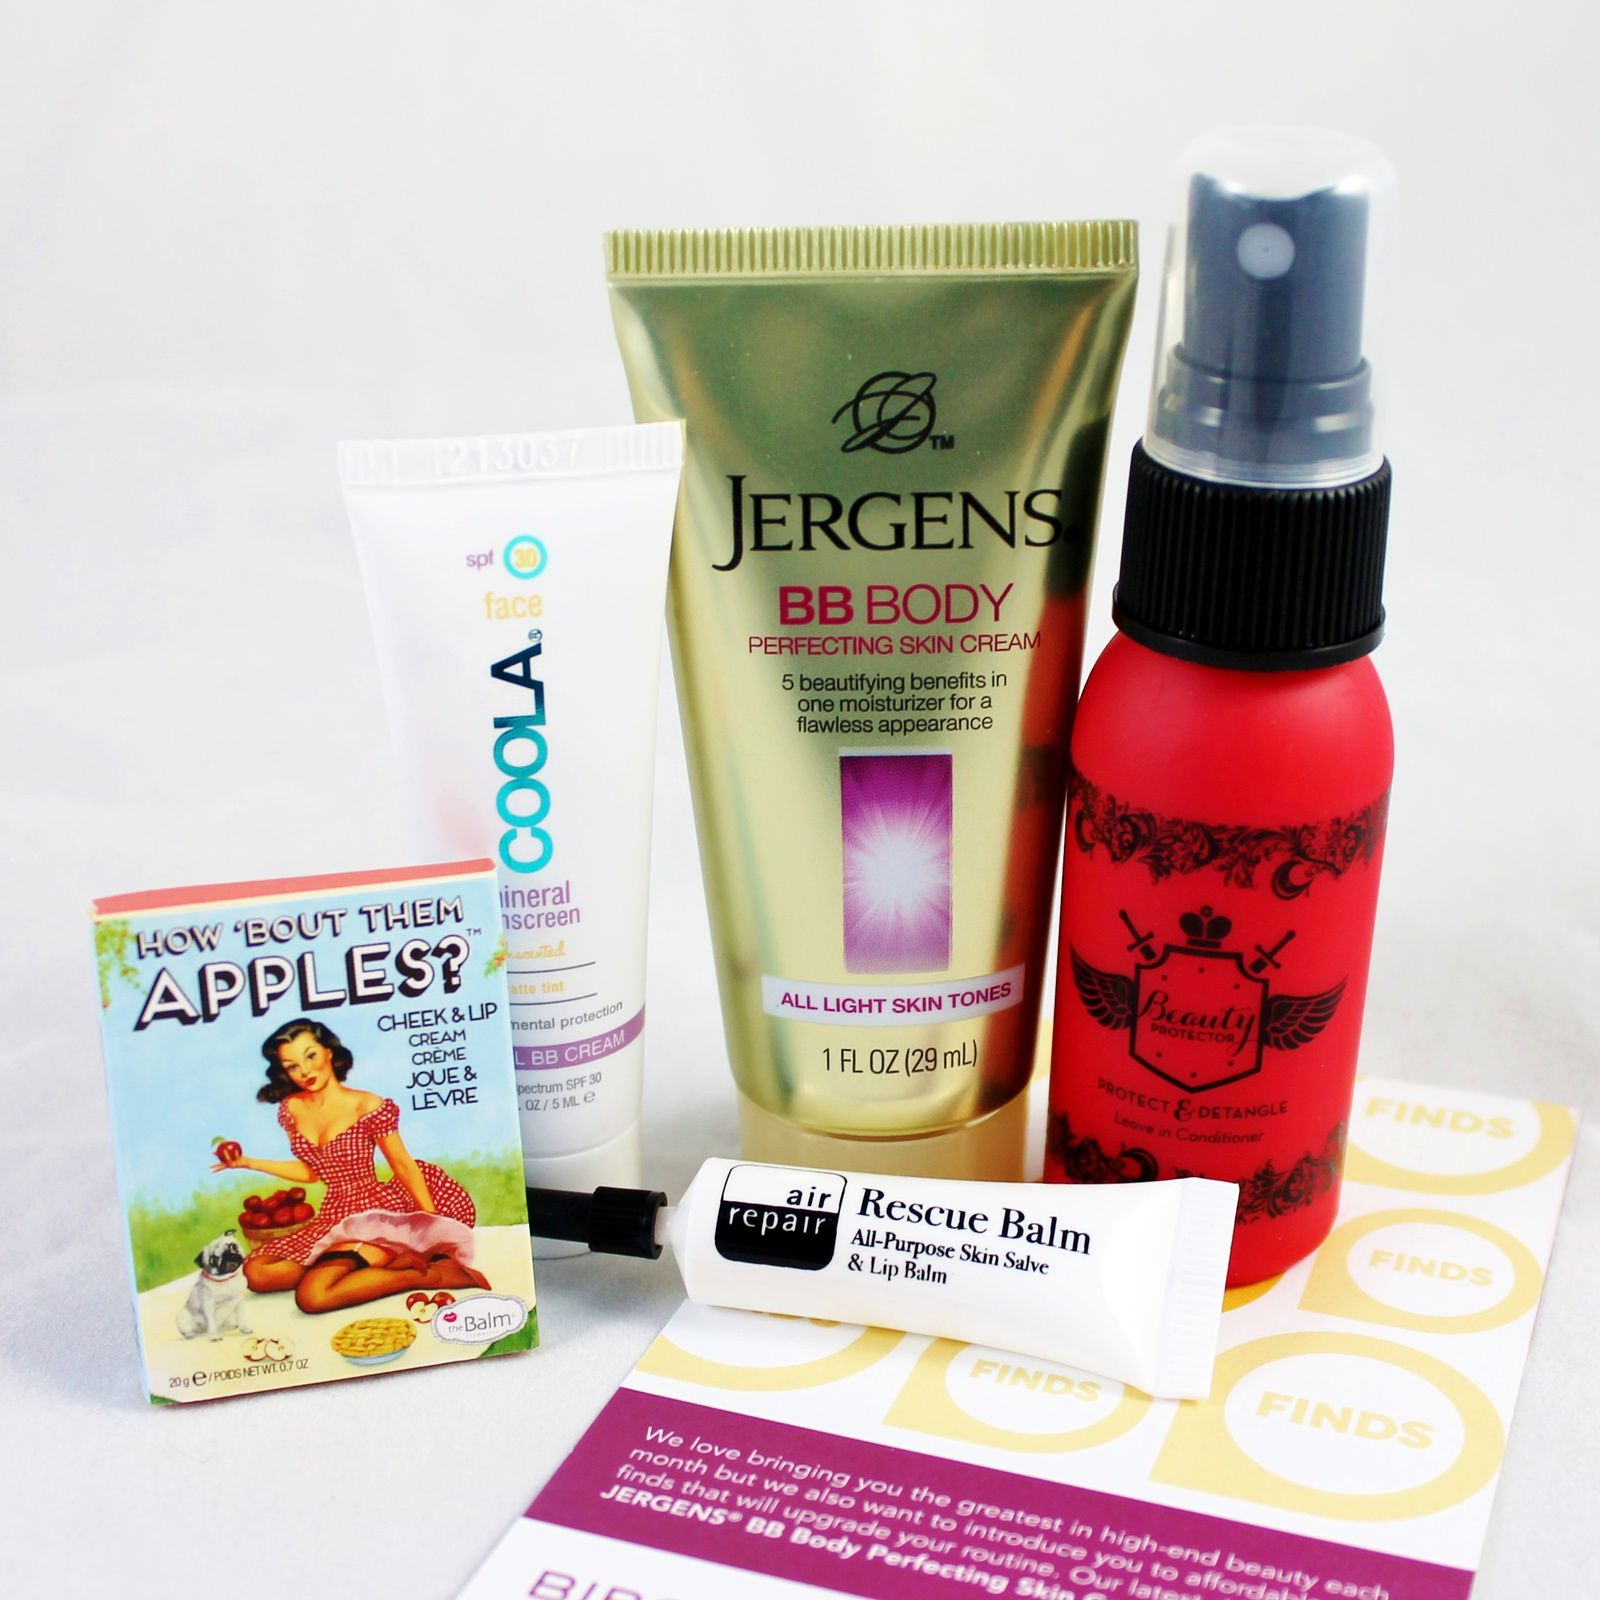 theBalm How 'Bout Them Apples?, Coola Tinted Matte SPF 30 BB cream, Air Repair Recue Balm, Jergens BB Body cream & Beauty Protector Hair leave-in conditionner